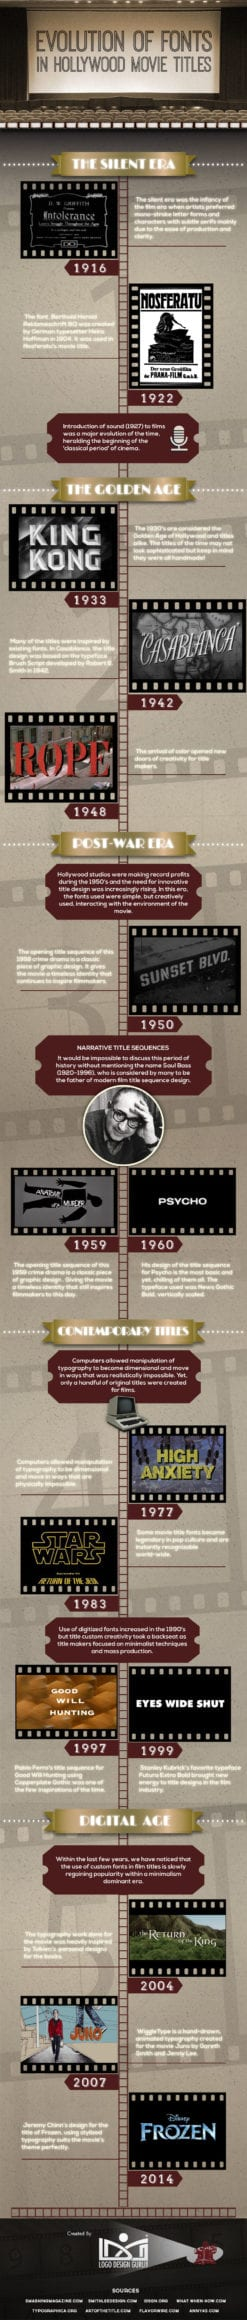 Evolution-of-fonts-in-hollywood-Movie-Titles